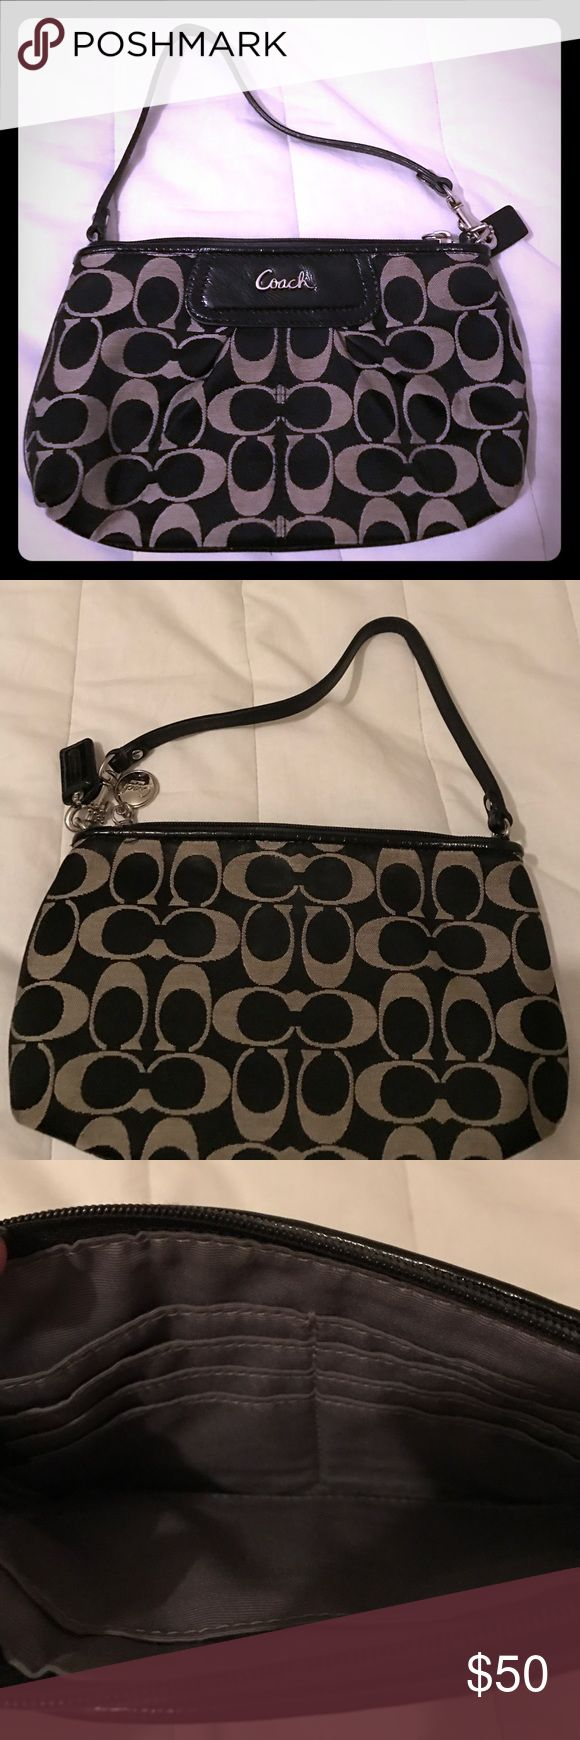 Coach clutch purse Black and silver/white designer Coach clutch purse. Only used a few times. Bought something smaller so need to sell. Great condition. Authentic. Coach Bags Clutches & Wristlets